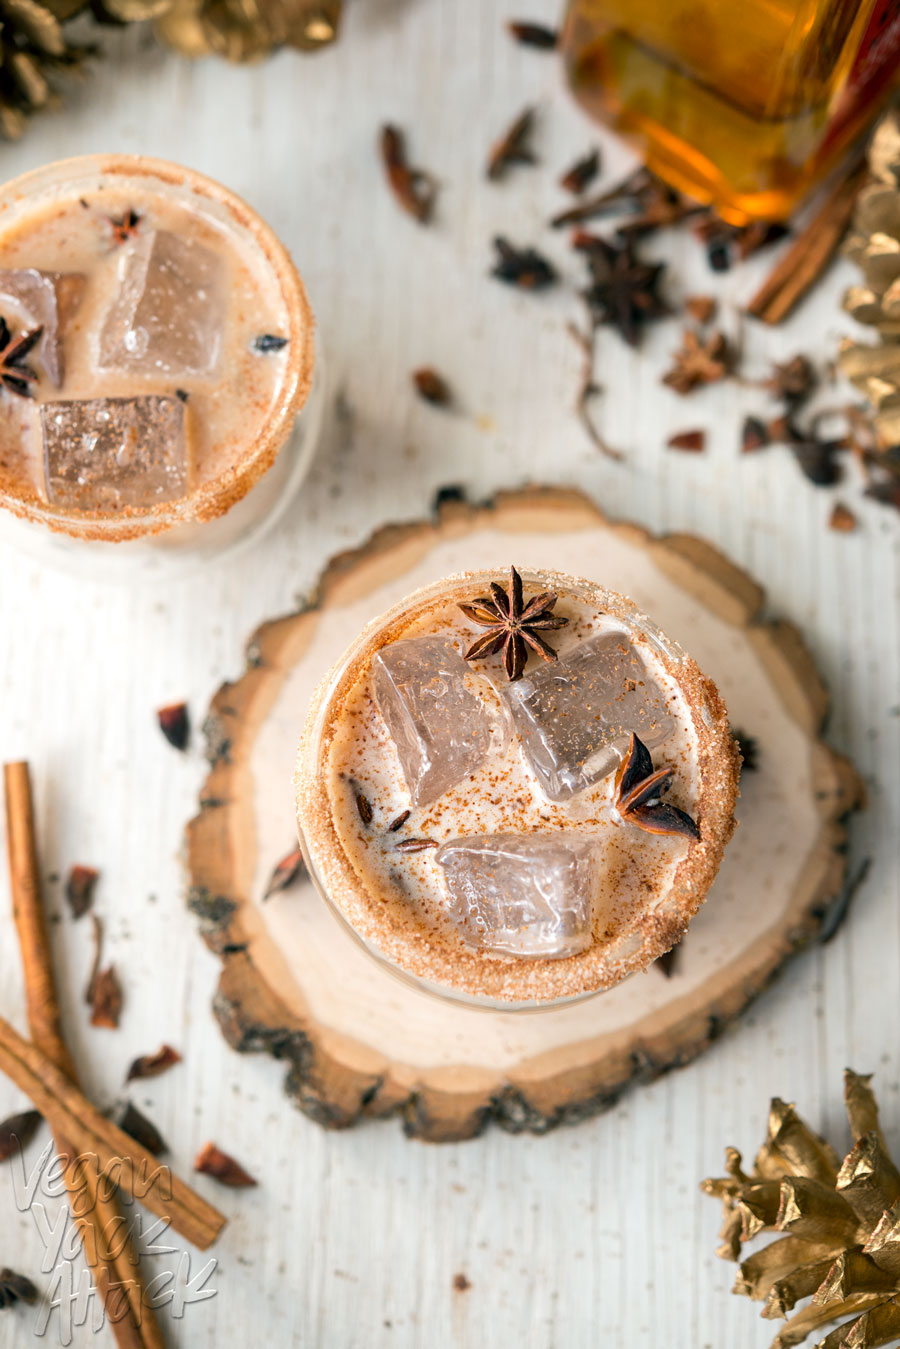 This Iced Cinnamon Whiskey Chai is spicy, cool and perfect for the holidays! Made with delicious Rebbl Ashwaganda Chai Elixir @Veganyackattack #rebbl #sponsored #recipe